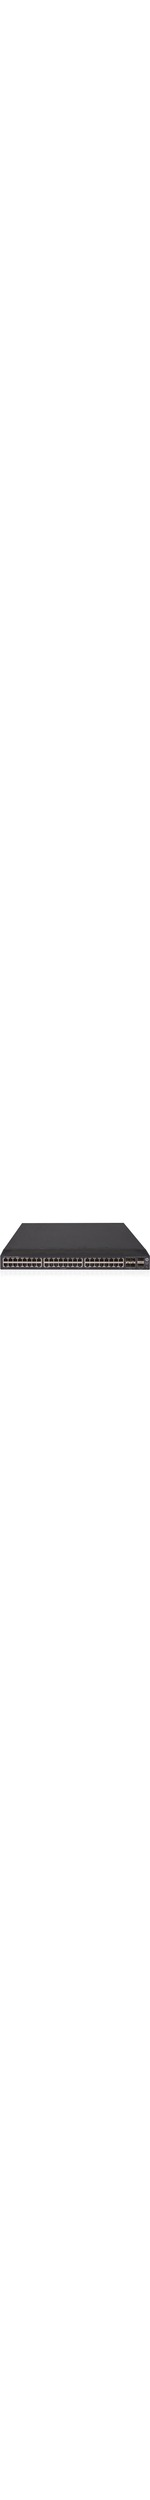 HP FlexFabric 5700-48G-4XG-2QSFPplus 48 Ports Manageable Layer 3 Switch